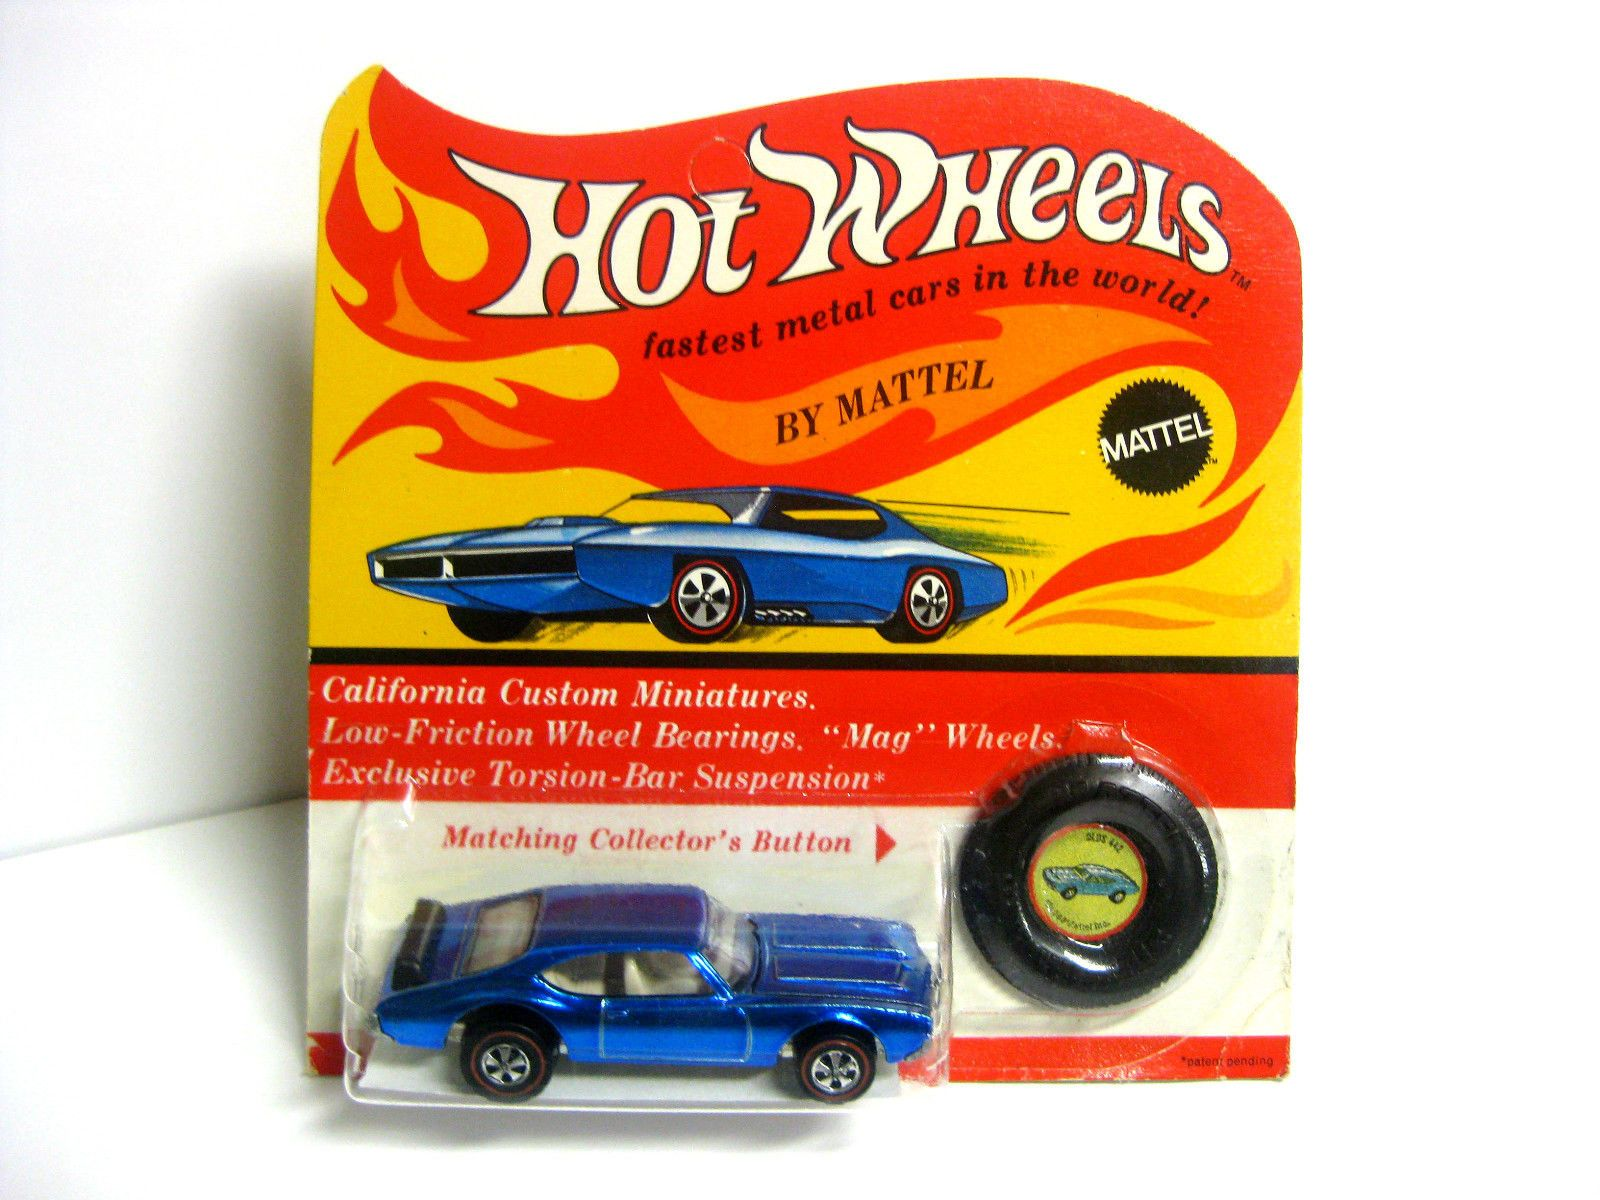 Mattel legends 1 24 1969 hot wheels twin mill concept car electronic - Hot Wheels 1970 Olds 442 Mip Released In 1971